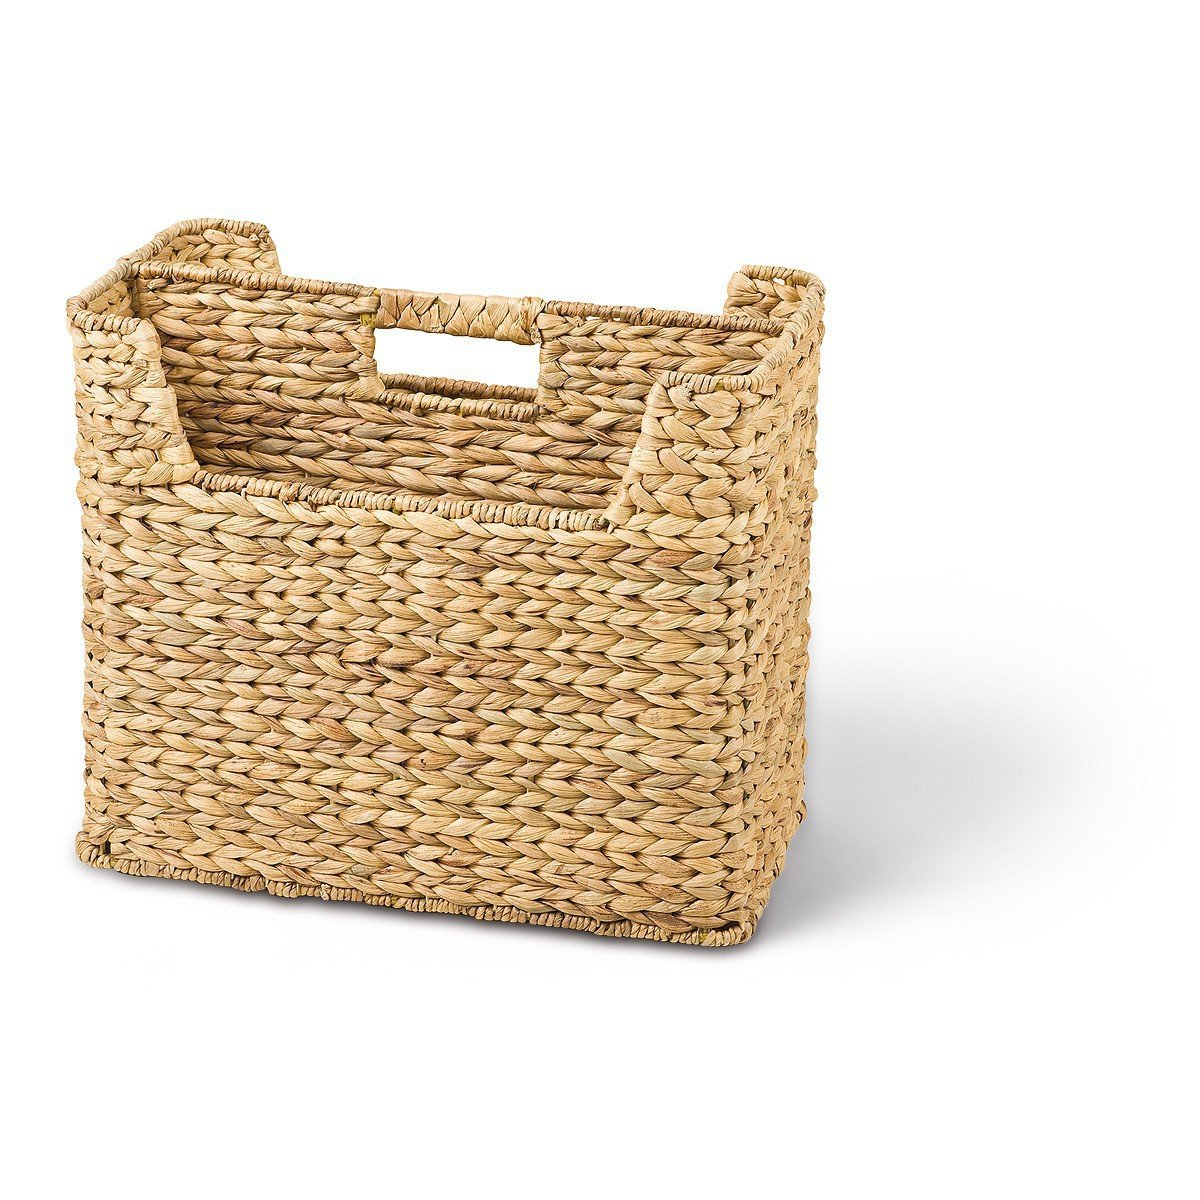 Wicker Newspaper Stand / Basket 2 Compartments 400 x 200 x 230 mm Water Hyacinth Back-Ideen